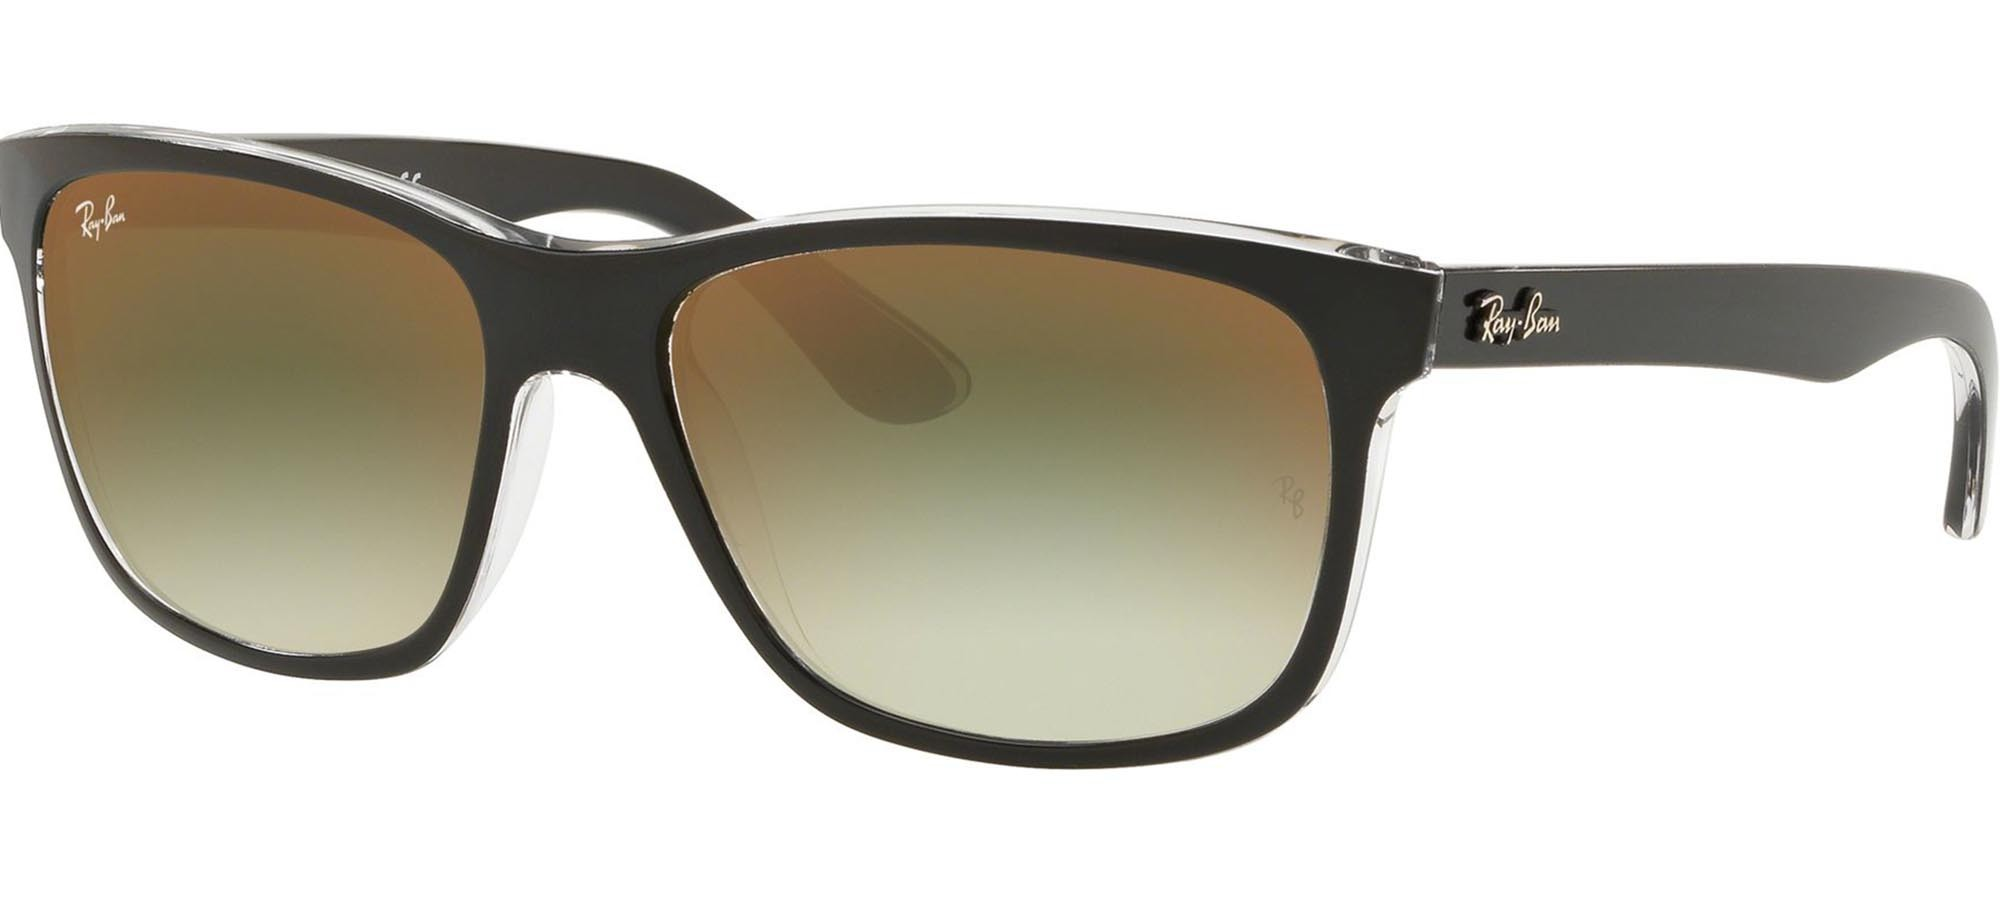 Ray-Ban sunglasses RB 4181